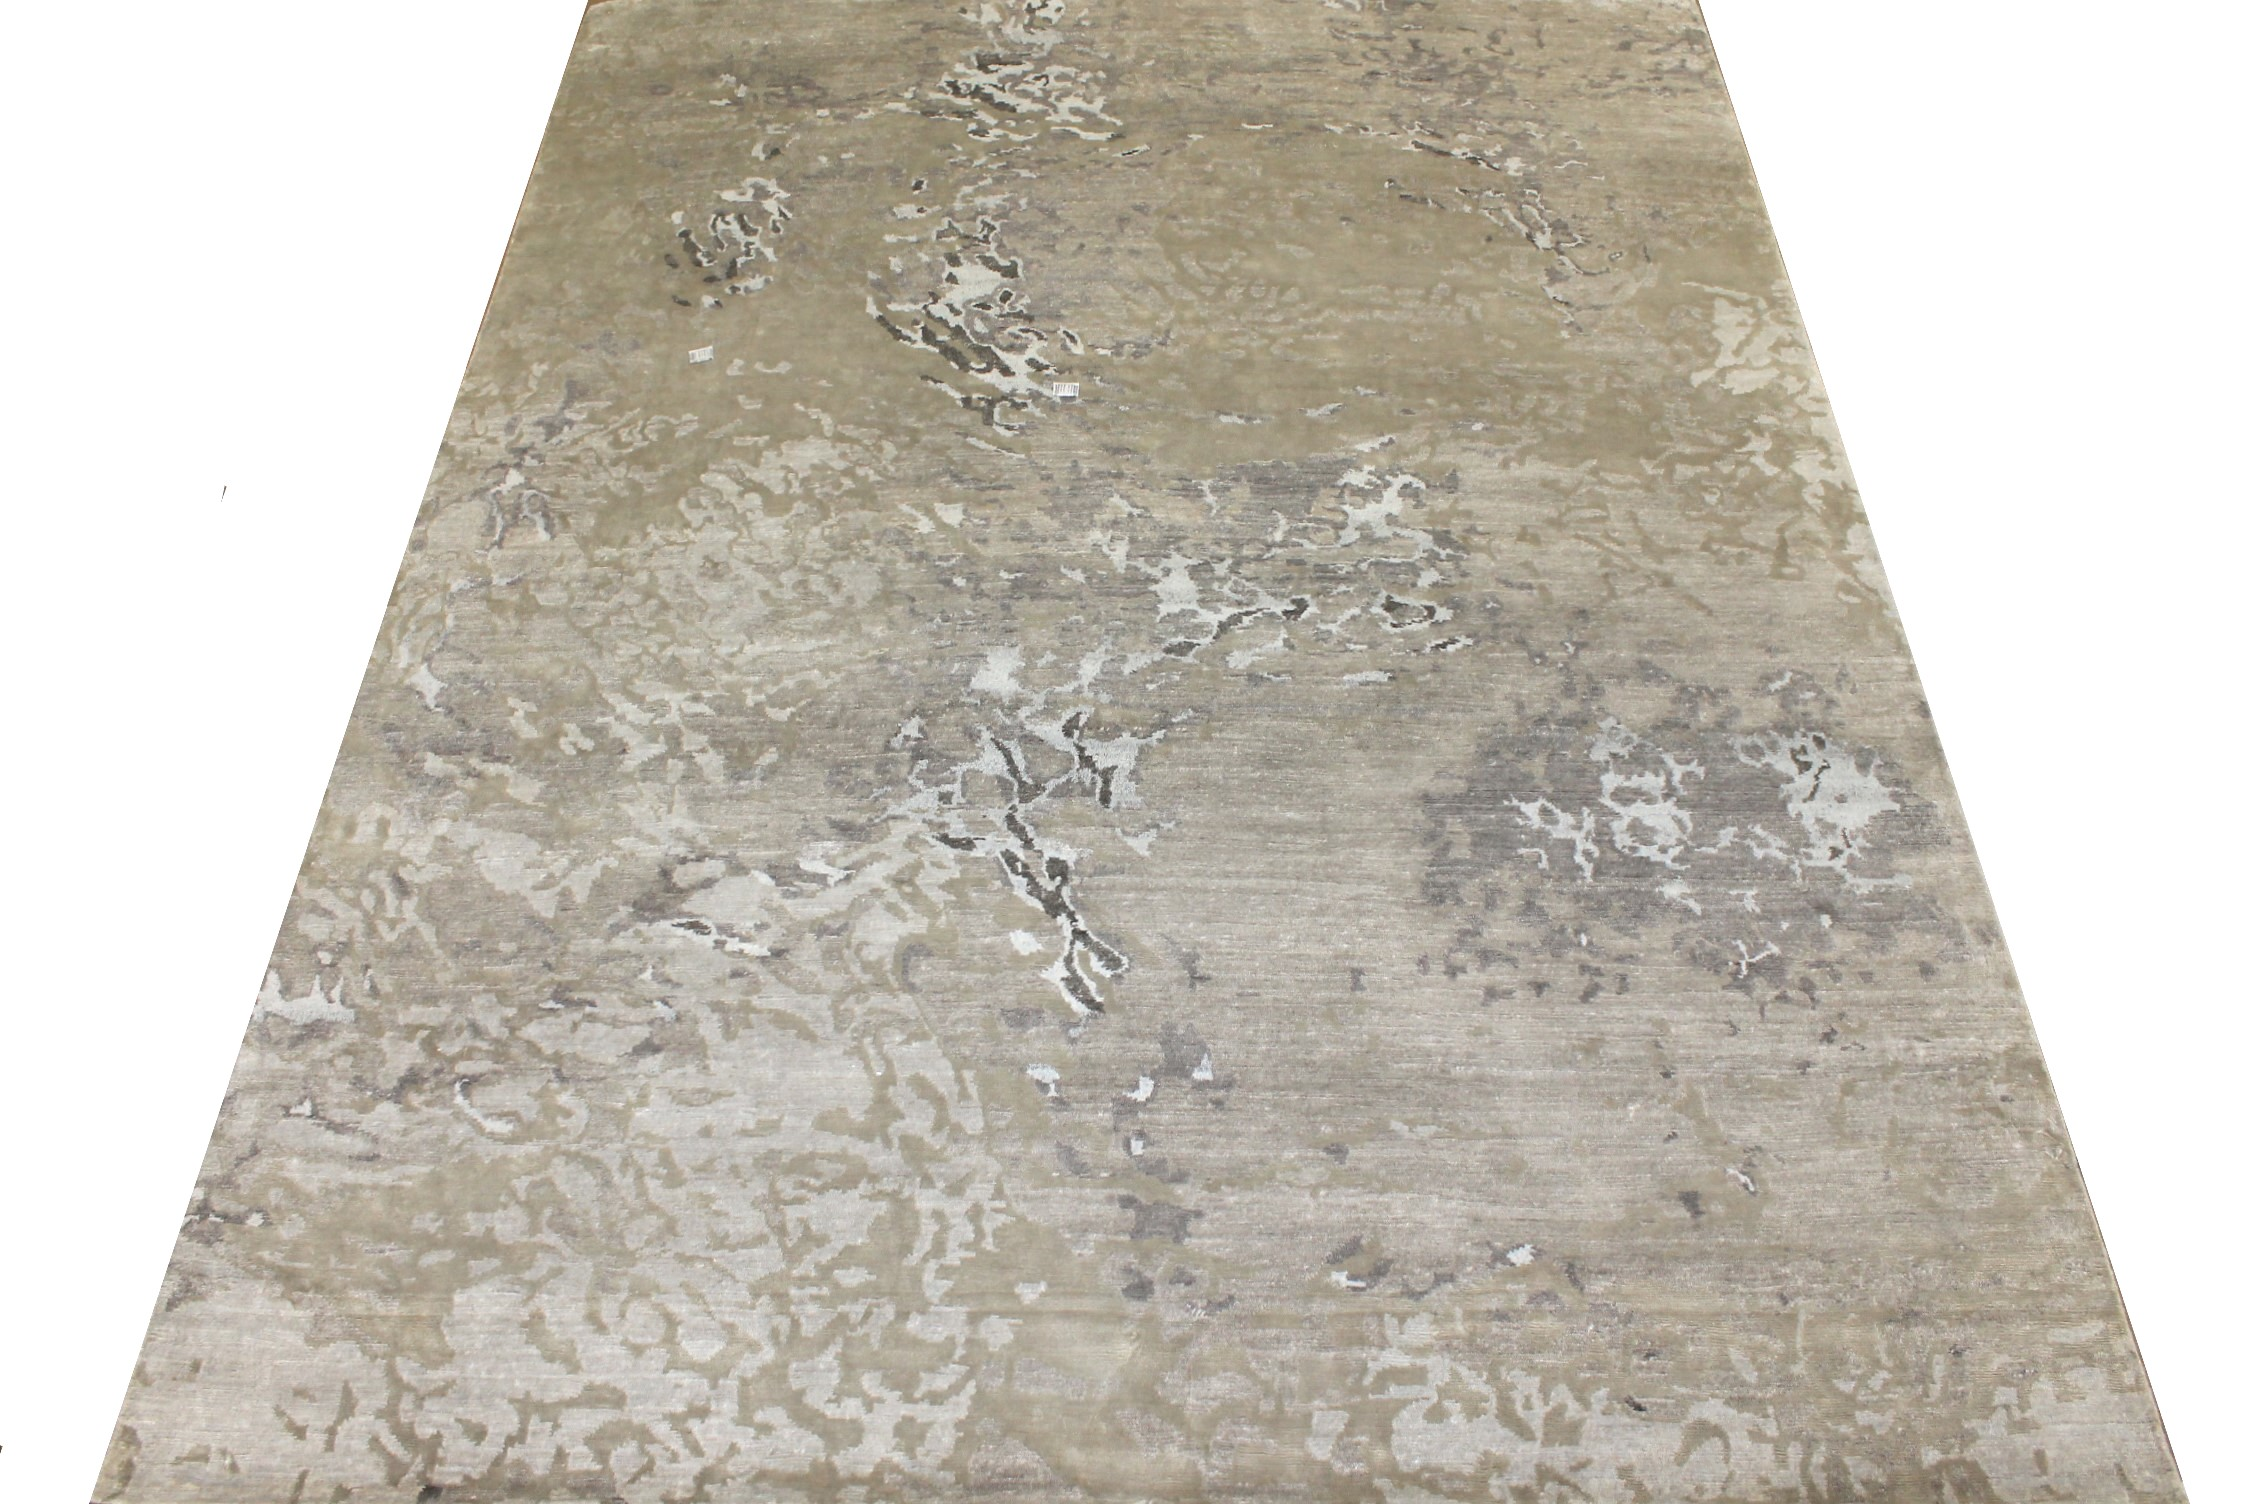 8x10 Modern Hand Knotted Wool & Bamboo Silk Area Rug - MR024886